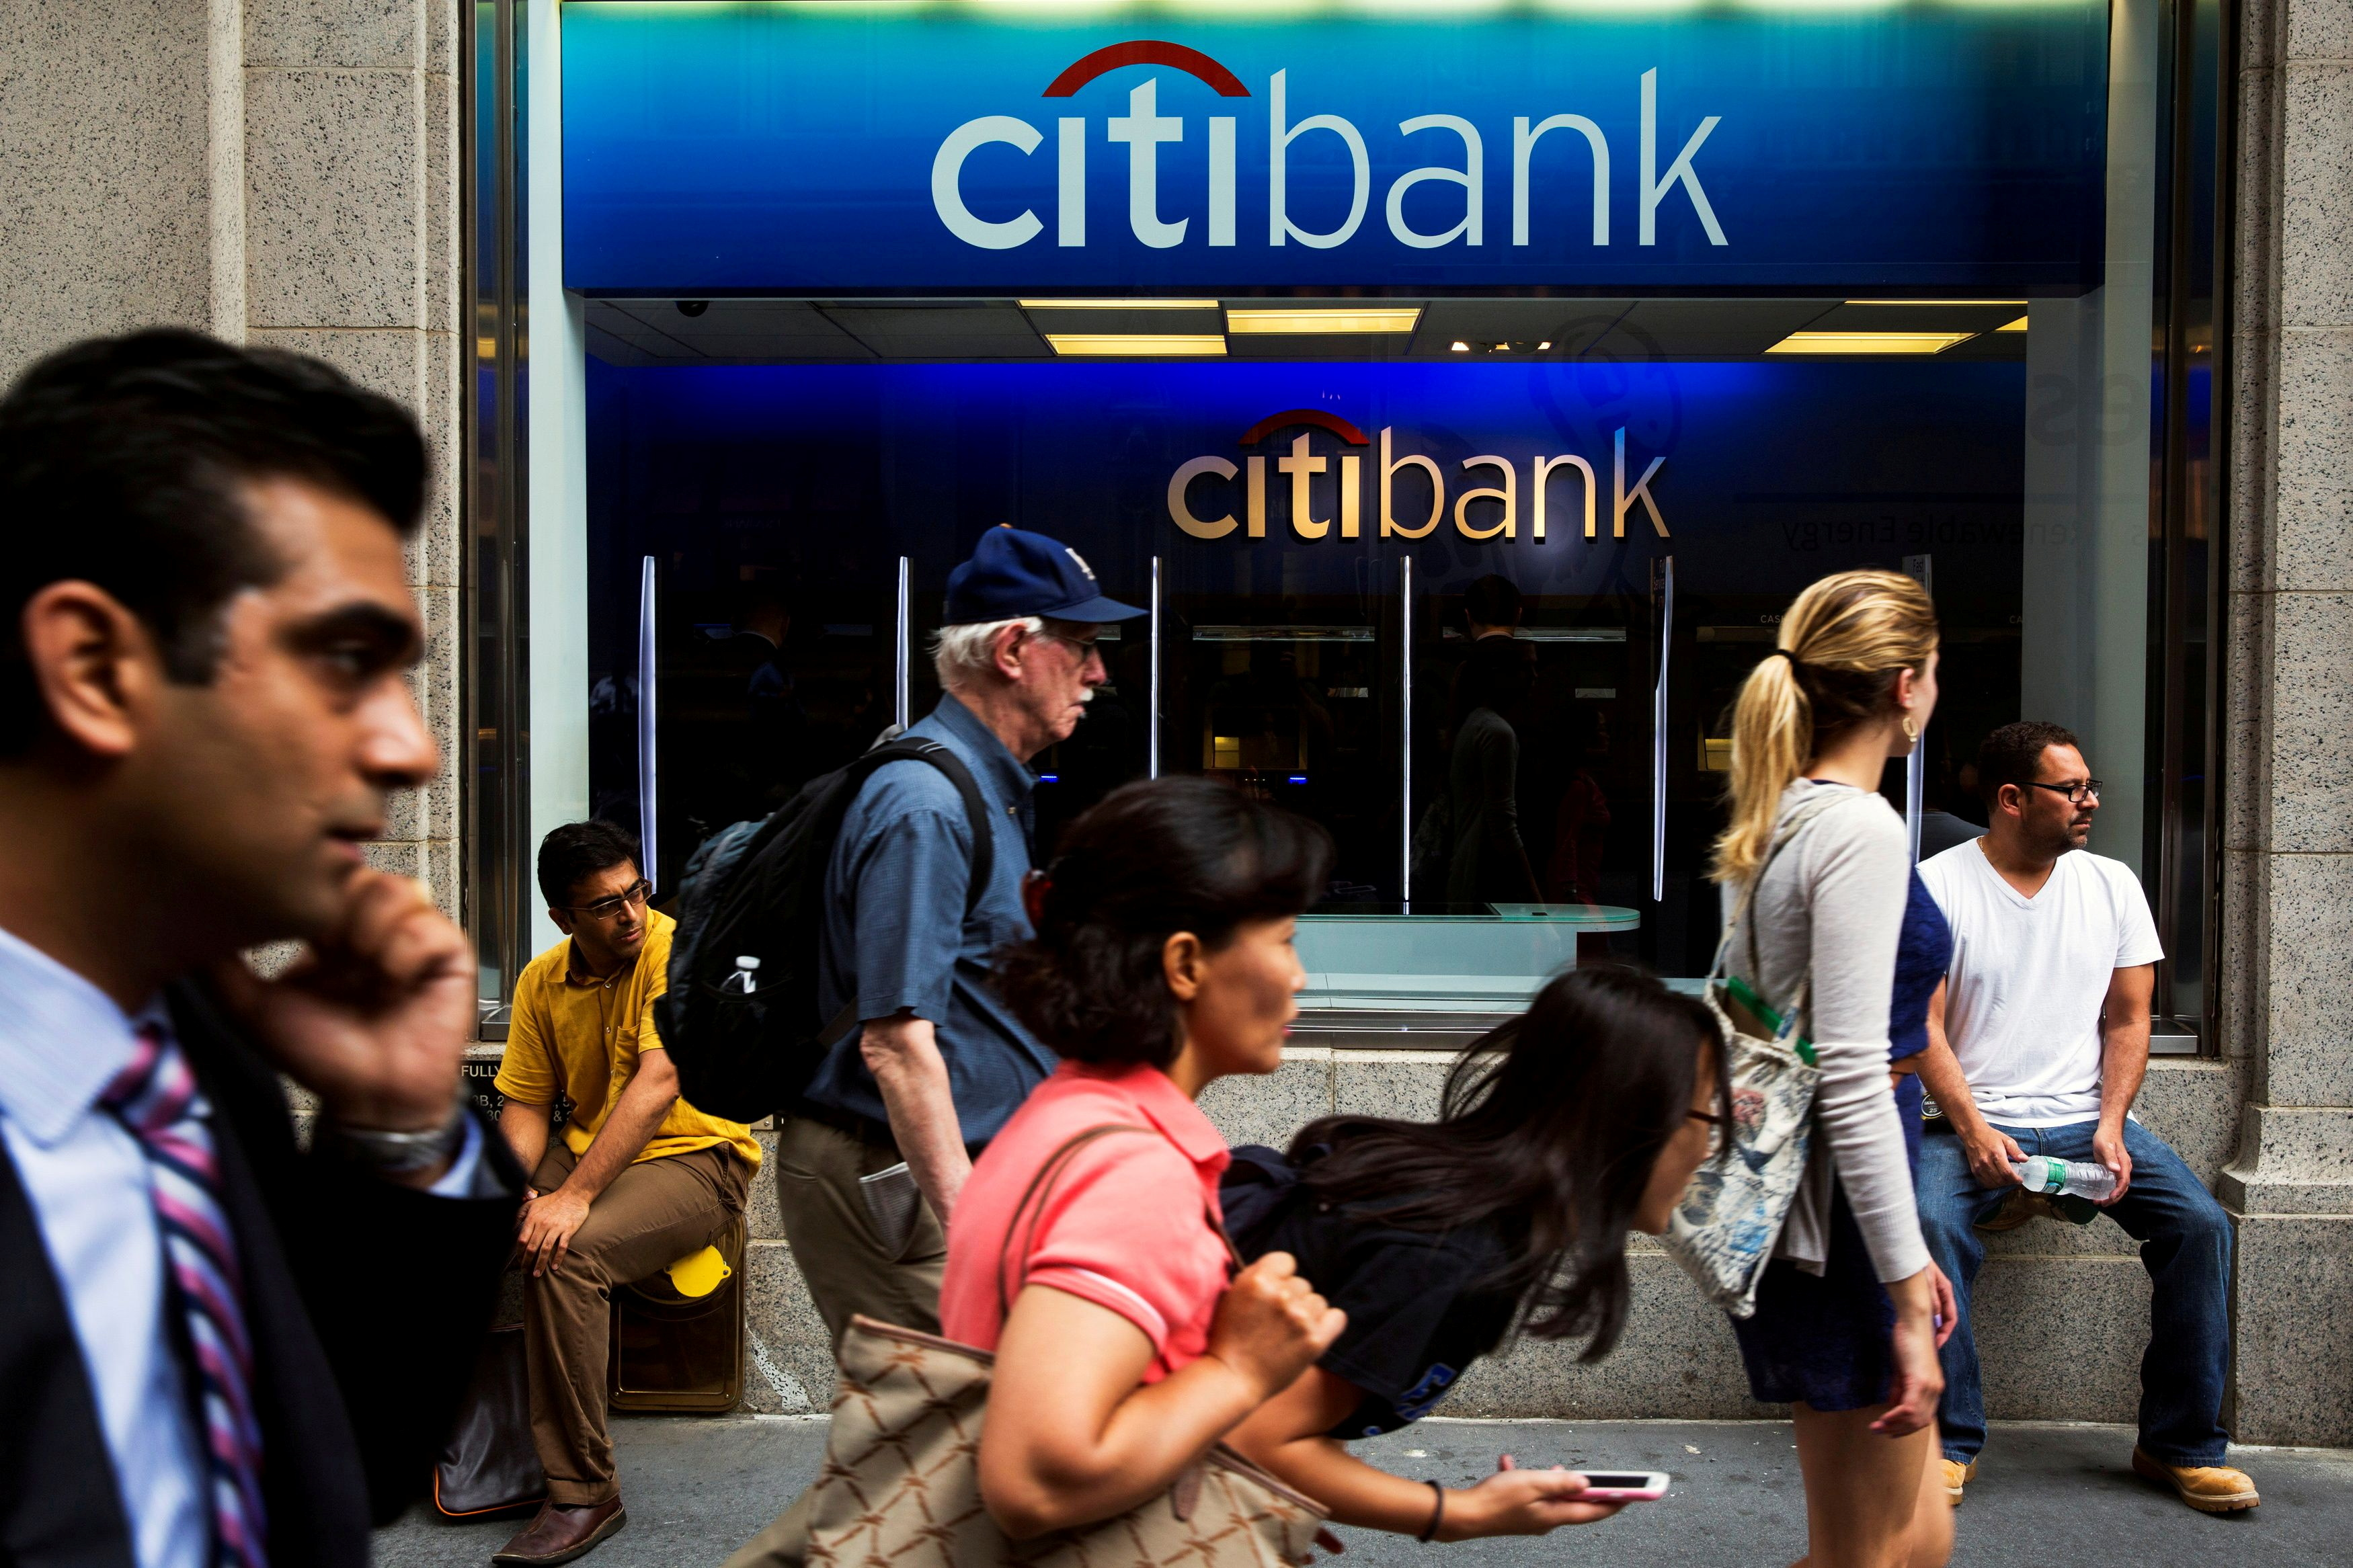 Pedestrians walk past the facade of a Citibank building in New York July 14, 2014.  REUTERS/Lucas Jackson/File Photo